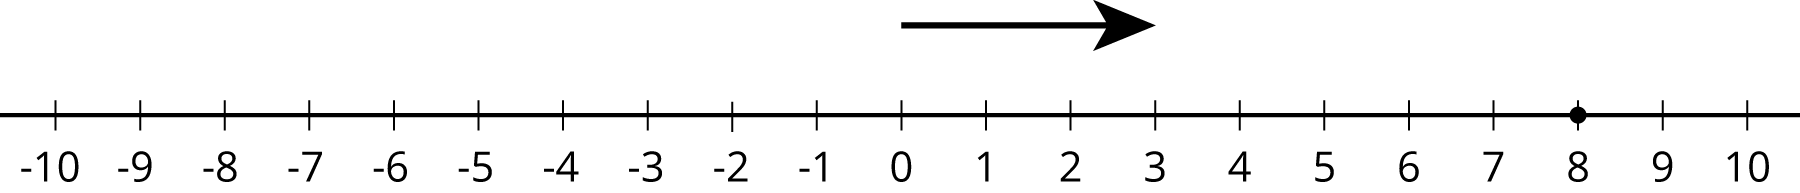 A number line with the numbers negative 10 through 10 indicated. Above the number line, an arrow pointing right starts at 0 and ends at 3. A solid dot is indicated at 8.